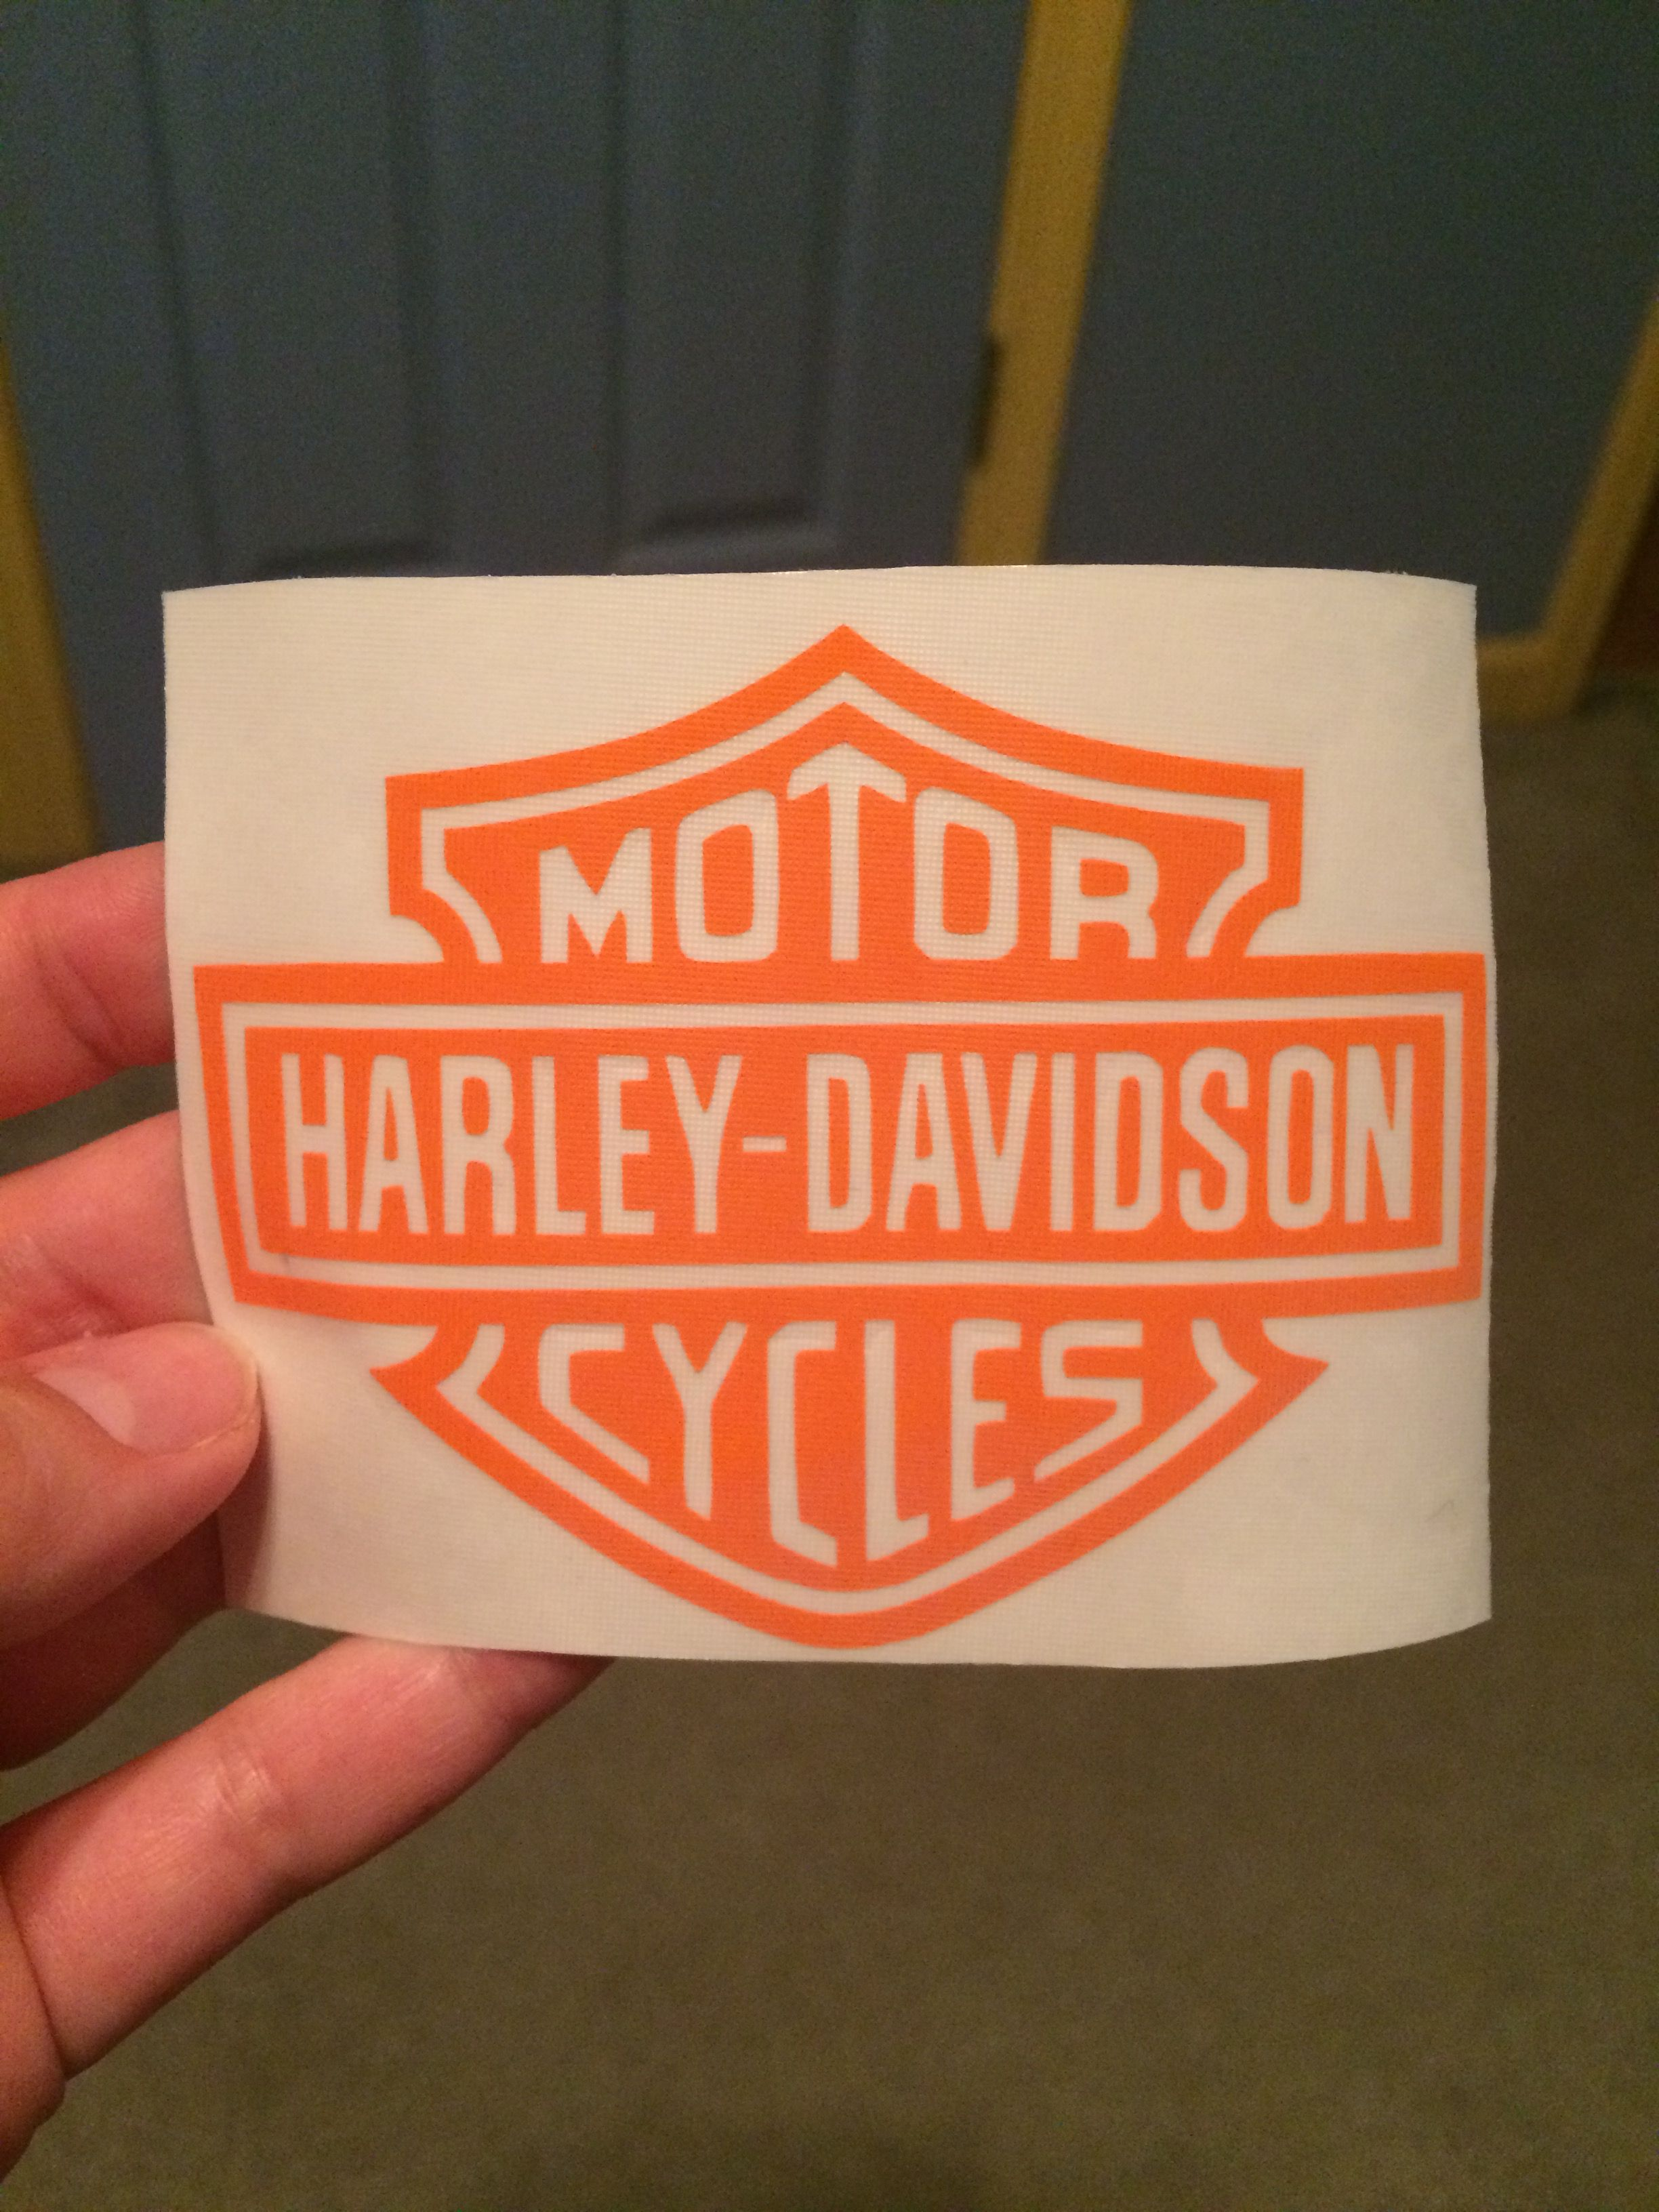 Harley Decal For Yeti Cup Made With Cricut Explore Air Cricut - How to make vinyl decals with cricut explore air